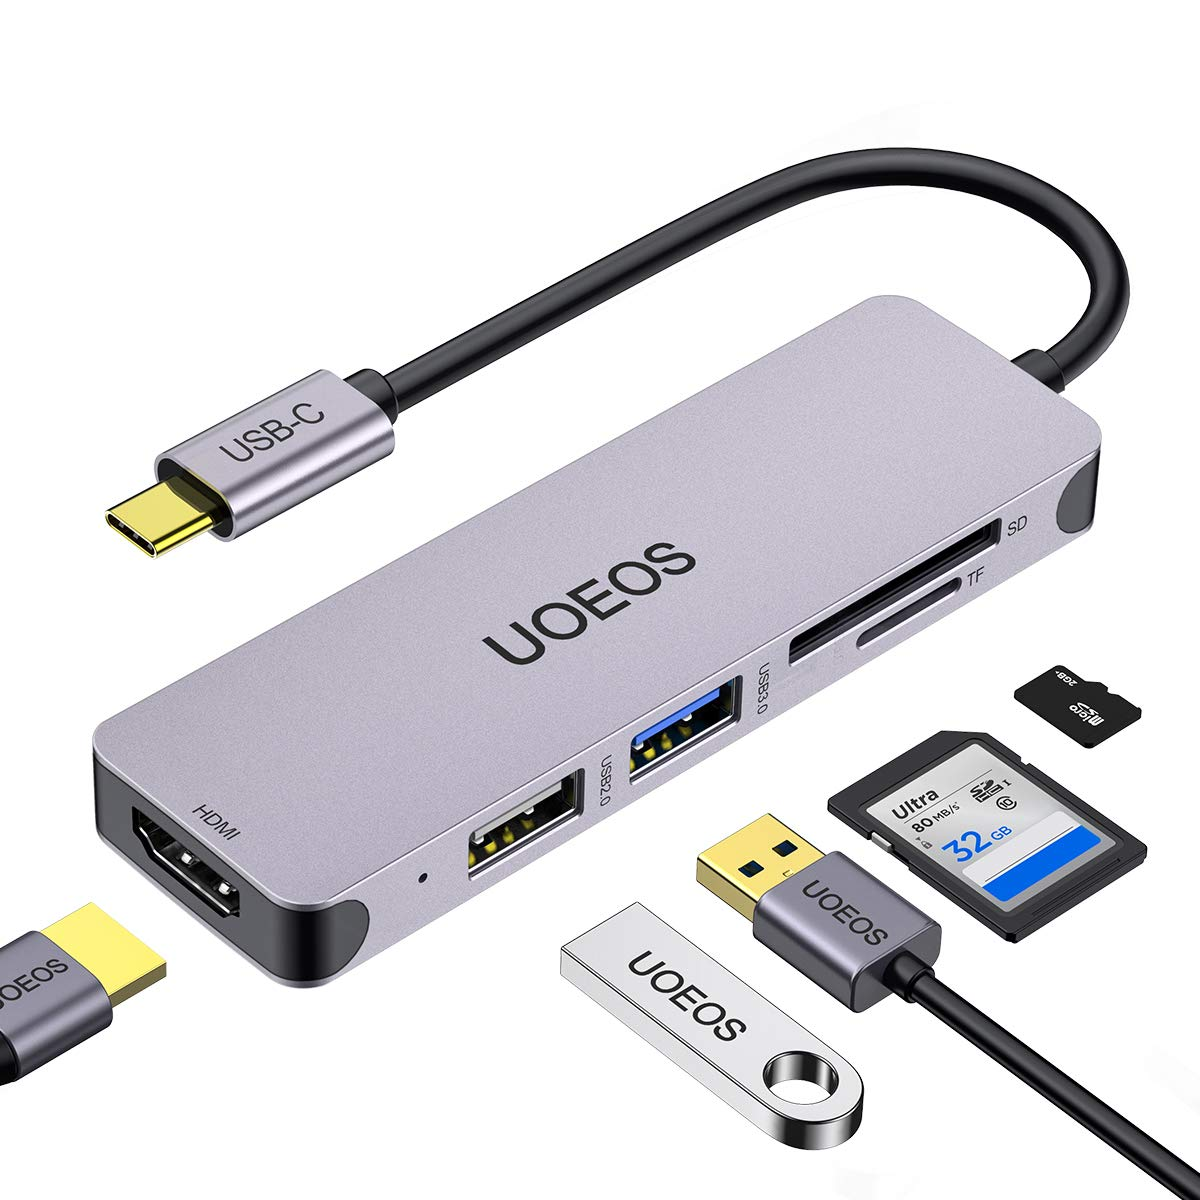 USB C Hub, UOEOS 5 in1 USB C to HDMI Adapter,Thunderbolt 3 USBc HDMI Card Reader Compatible with MacBook Pro, Surface Pro/Go,IPad pro,XPS 13,DEX Adapter and Other Type C Laptops